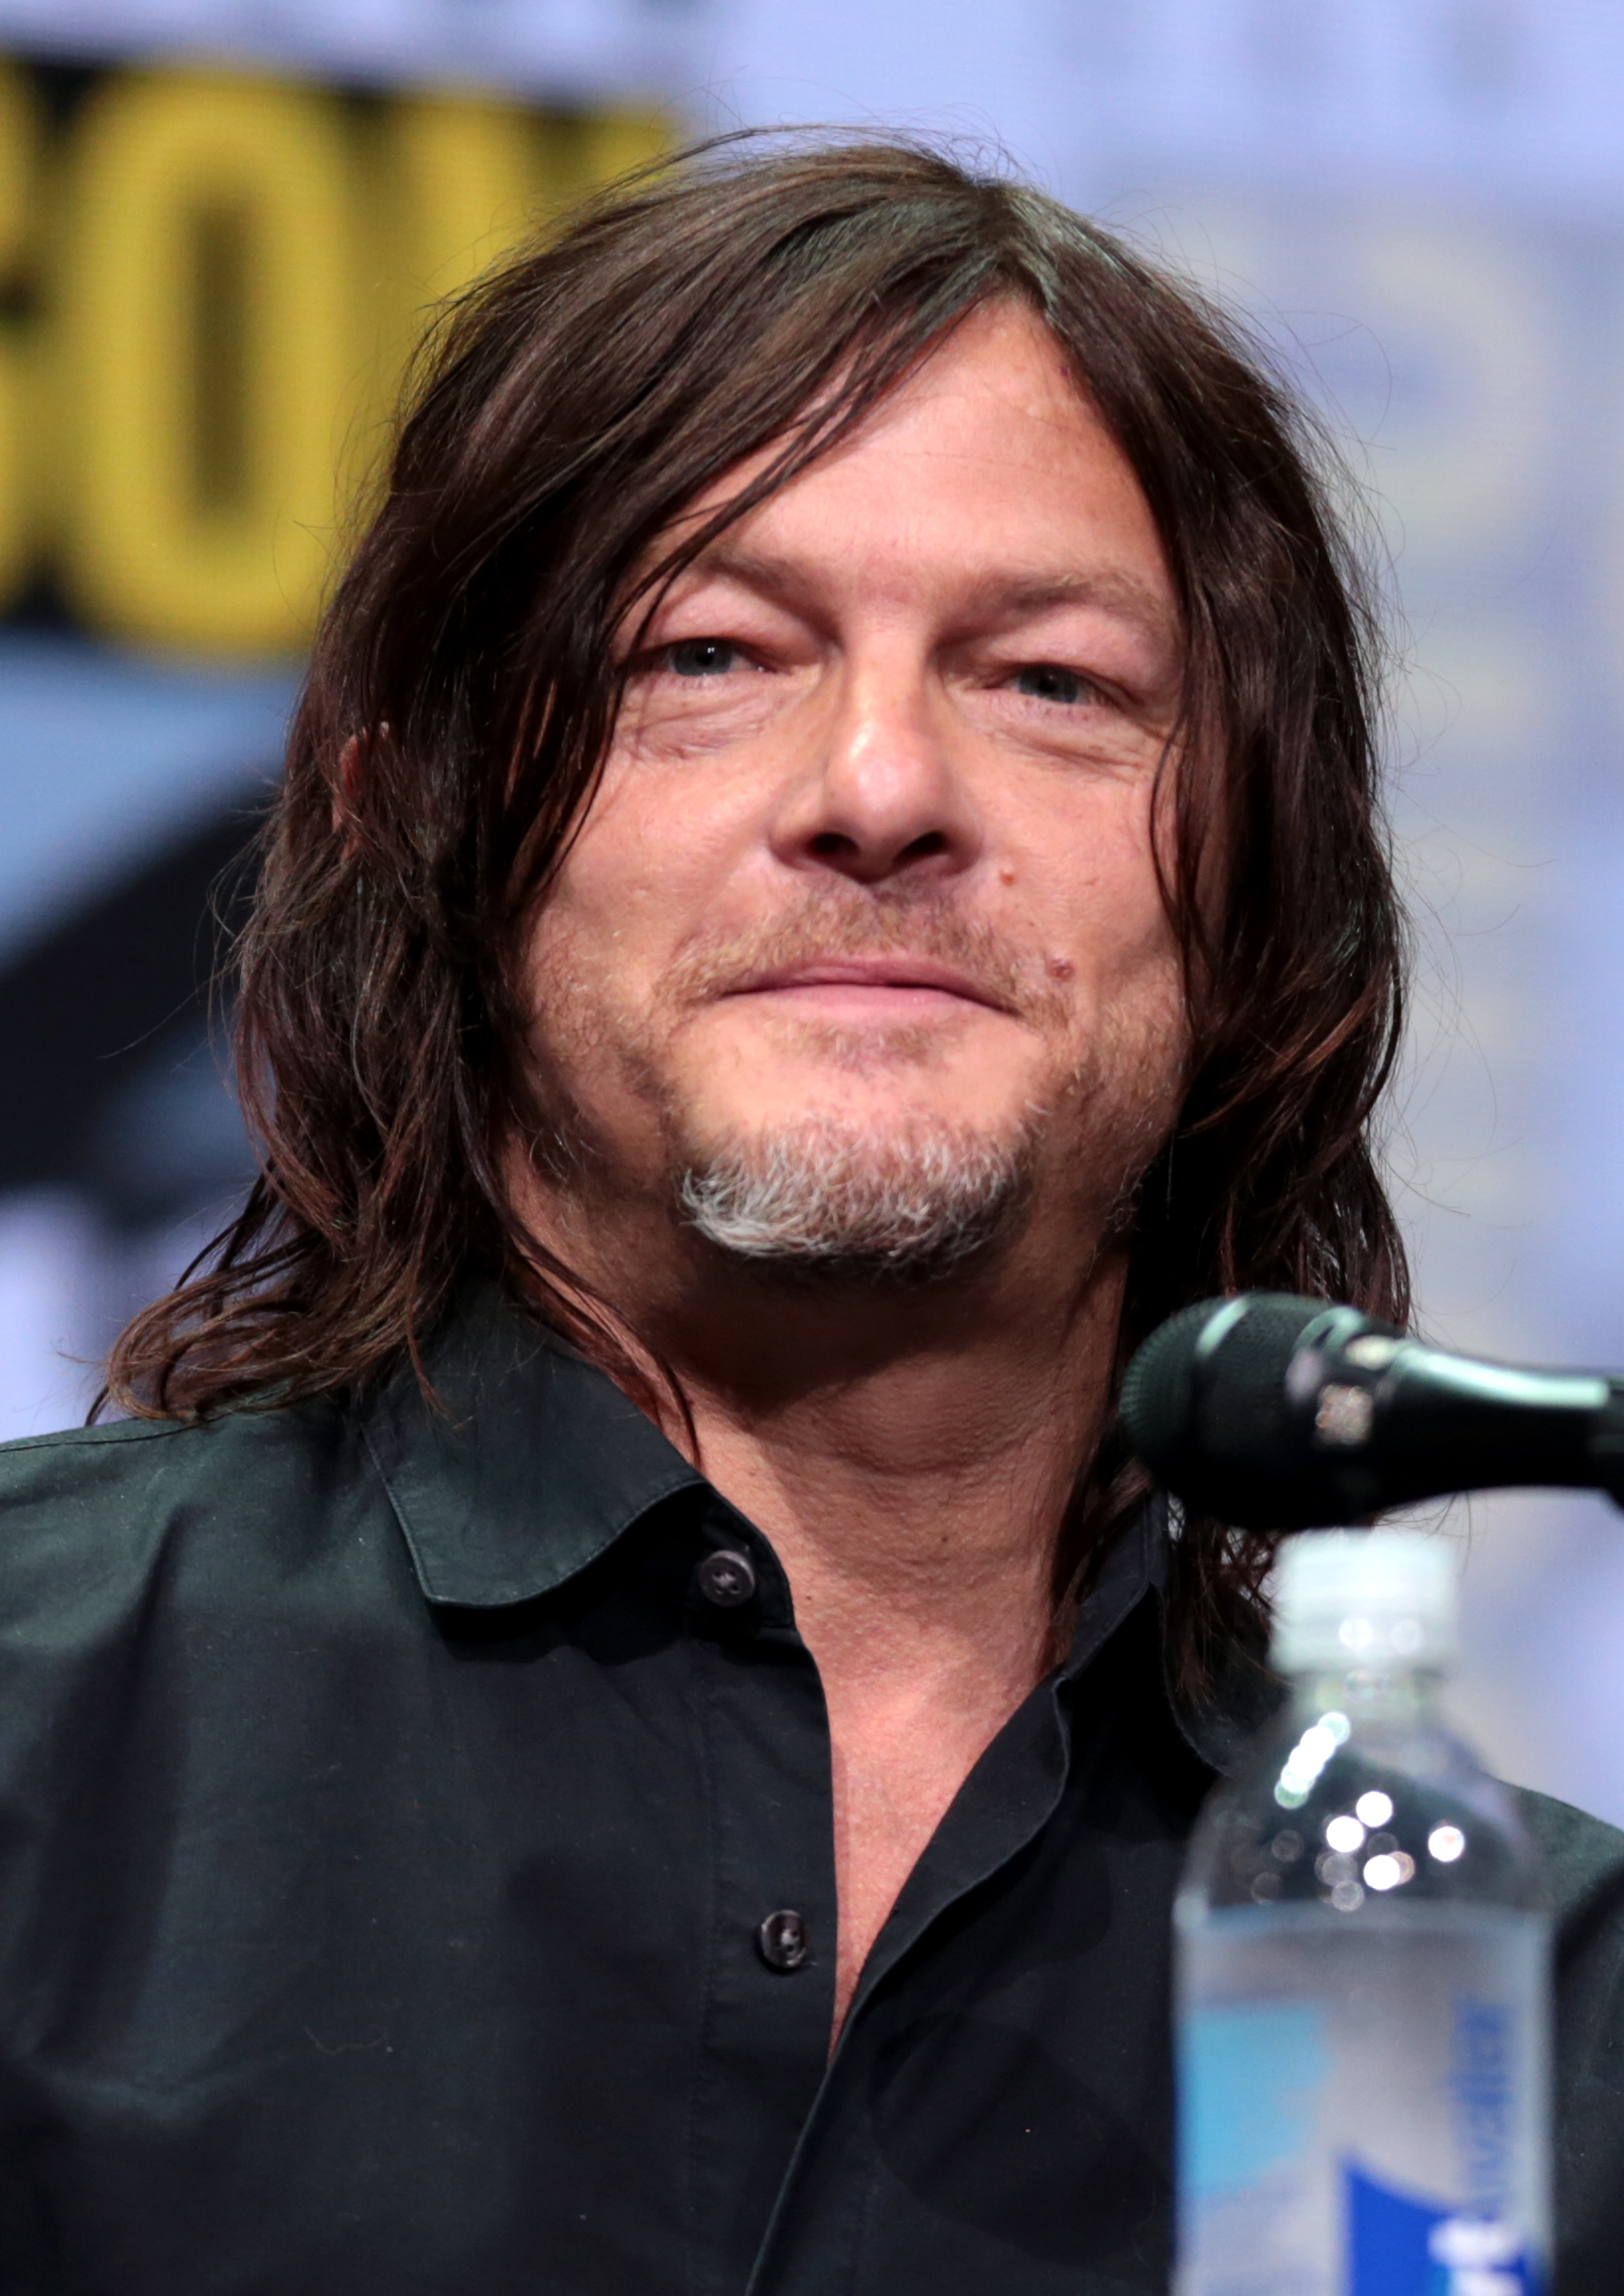 The 49-year old son of father Norman Reedus and mother Marianne Reedus Norman Reedus in 2018 photo. Norman Reedus earned a  million dollar salary - leaving the net worth at 8 million in 2018